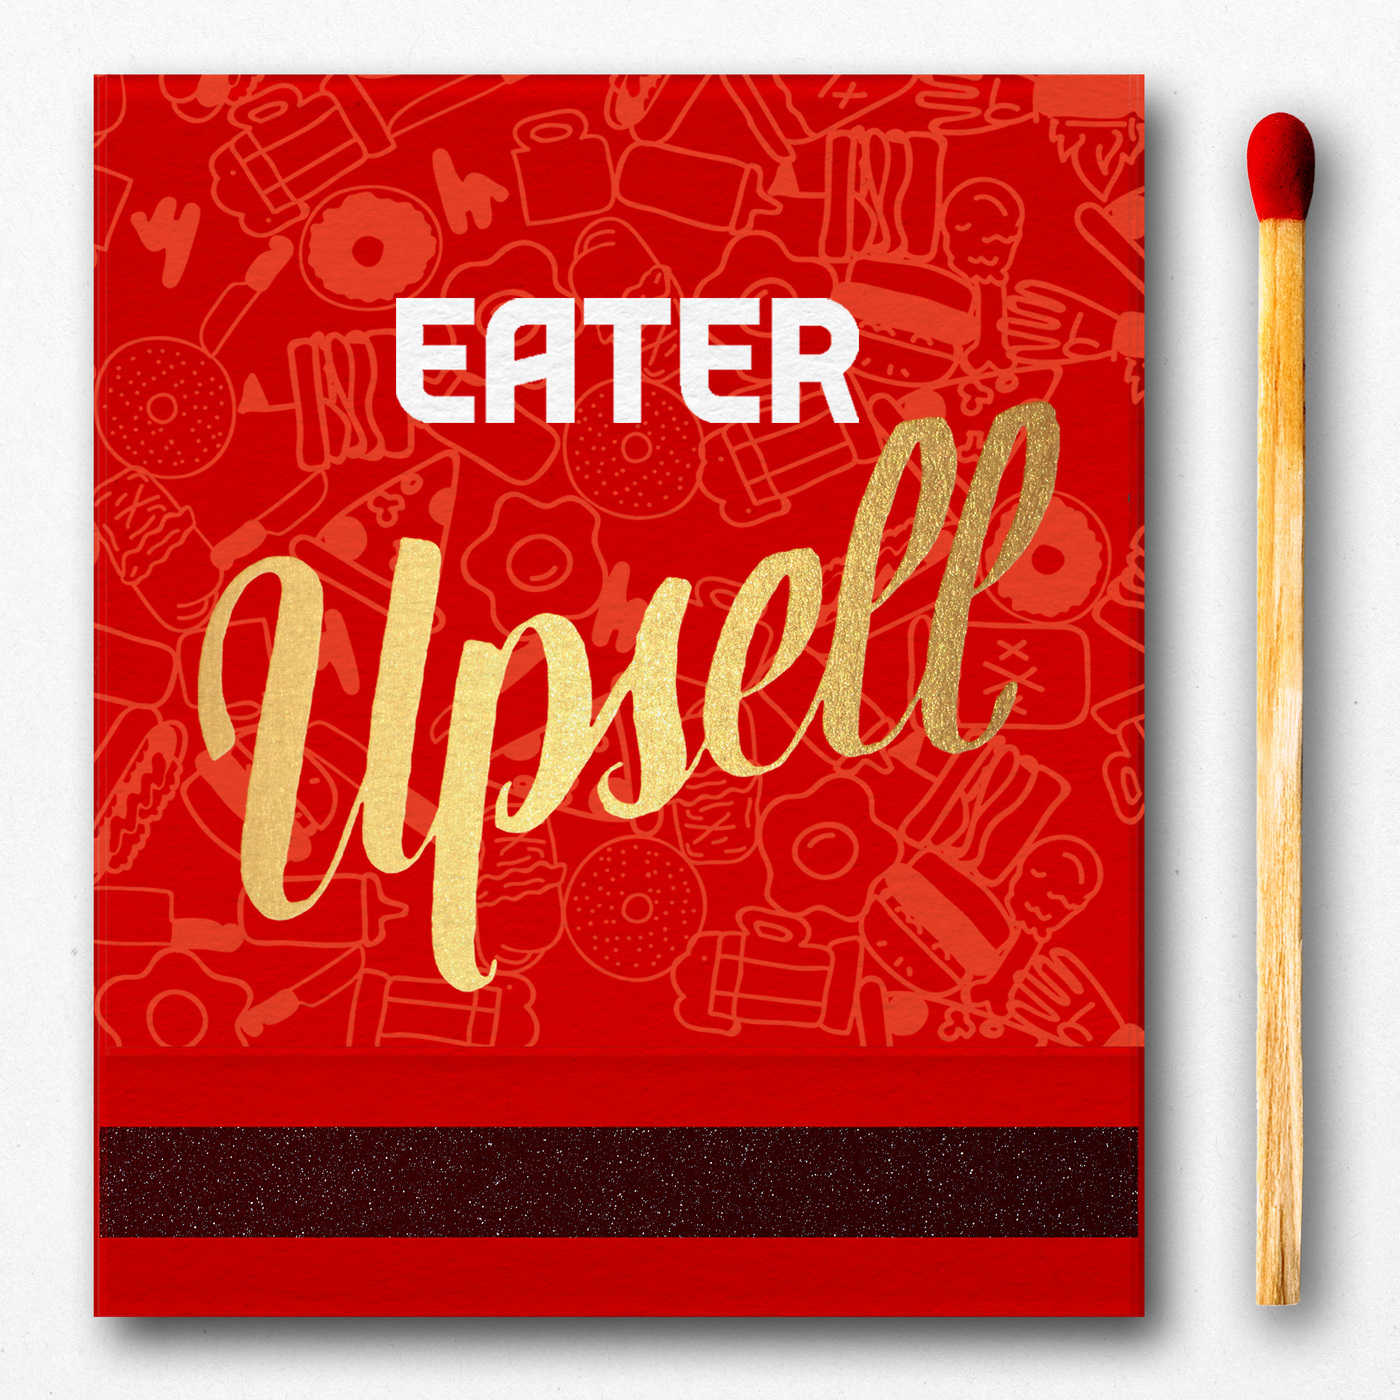 The Eater Upsell